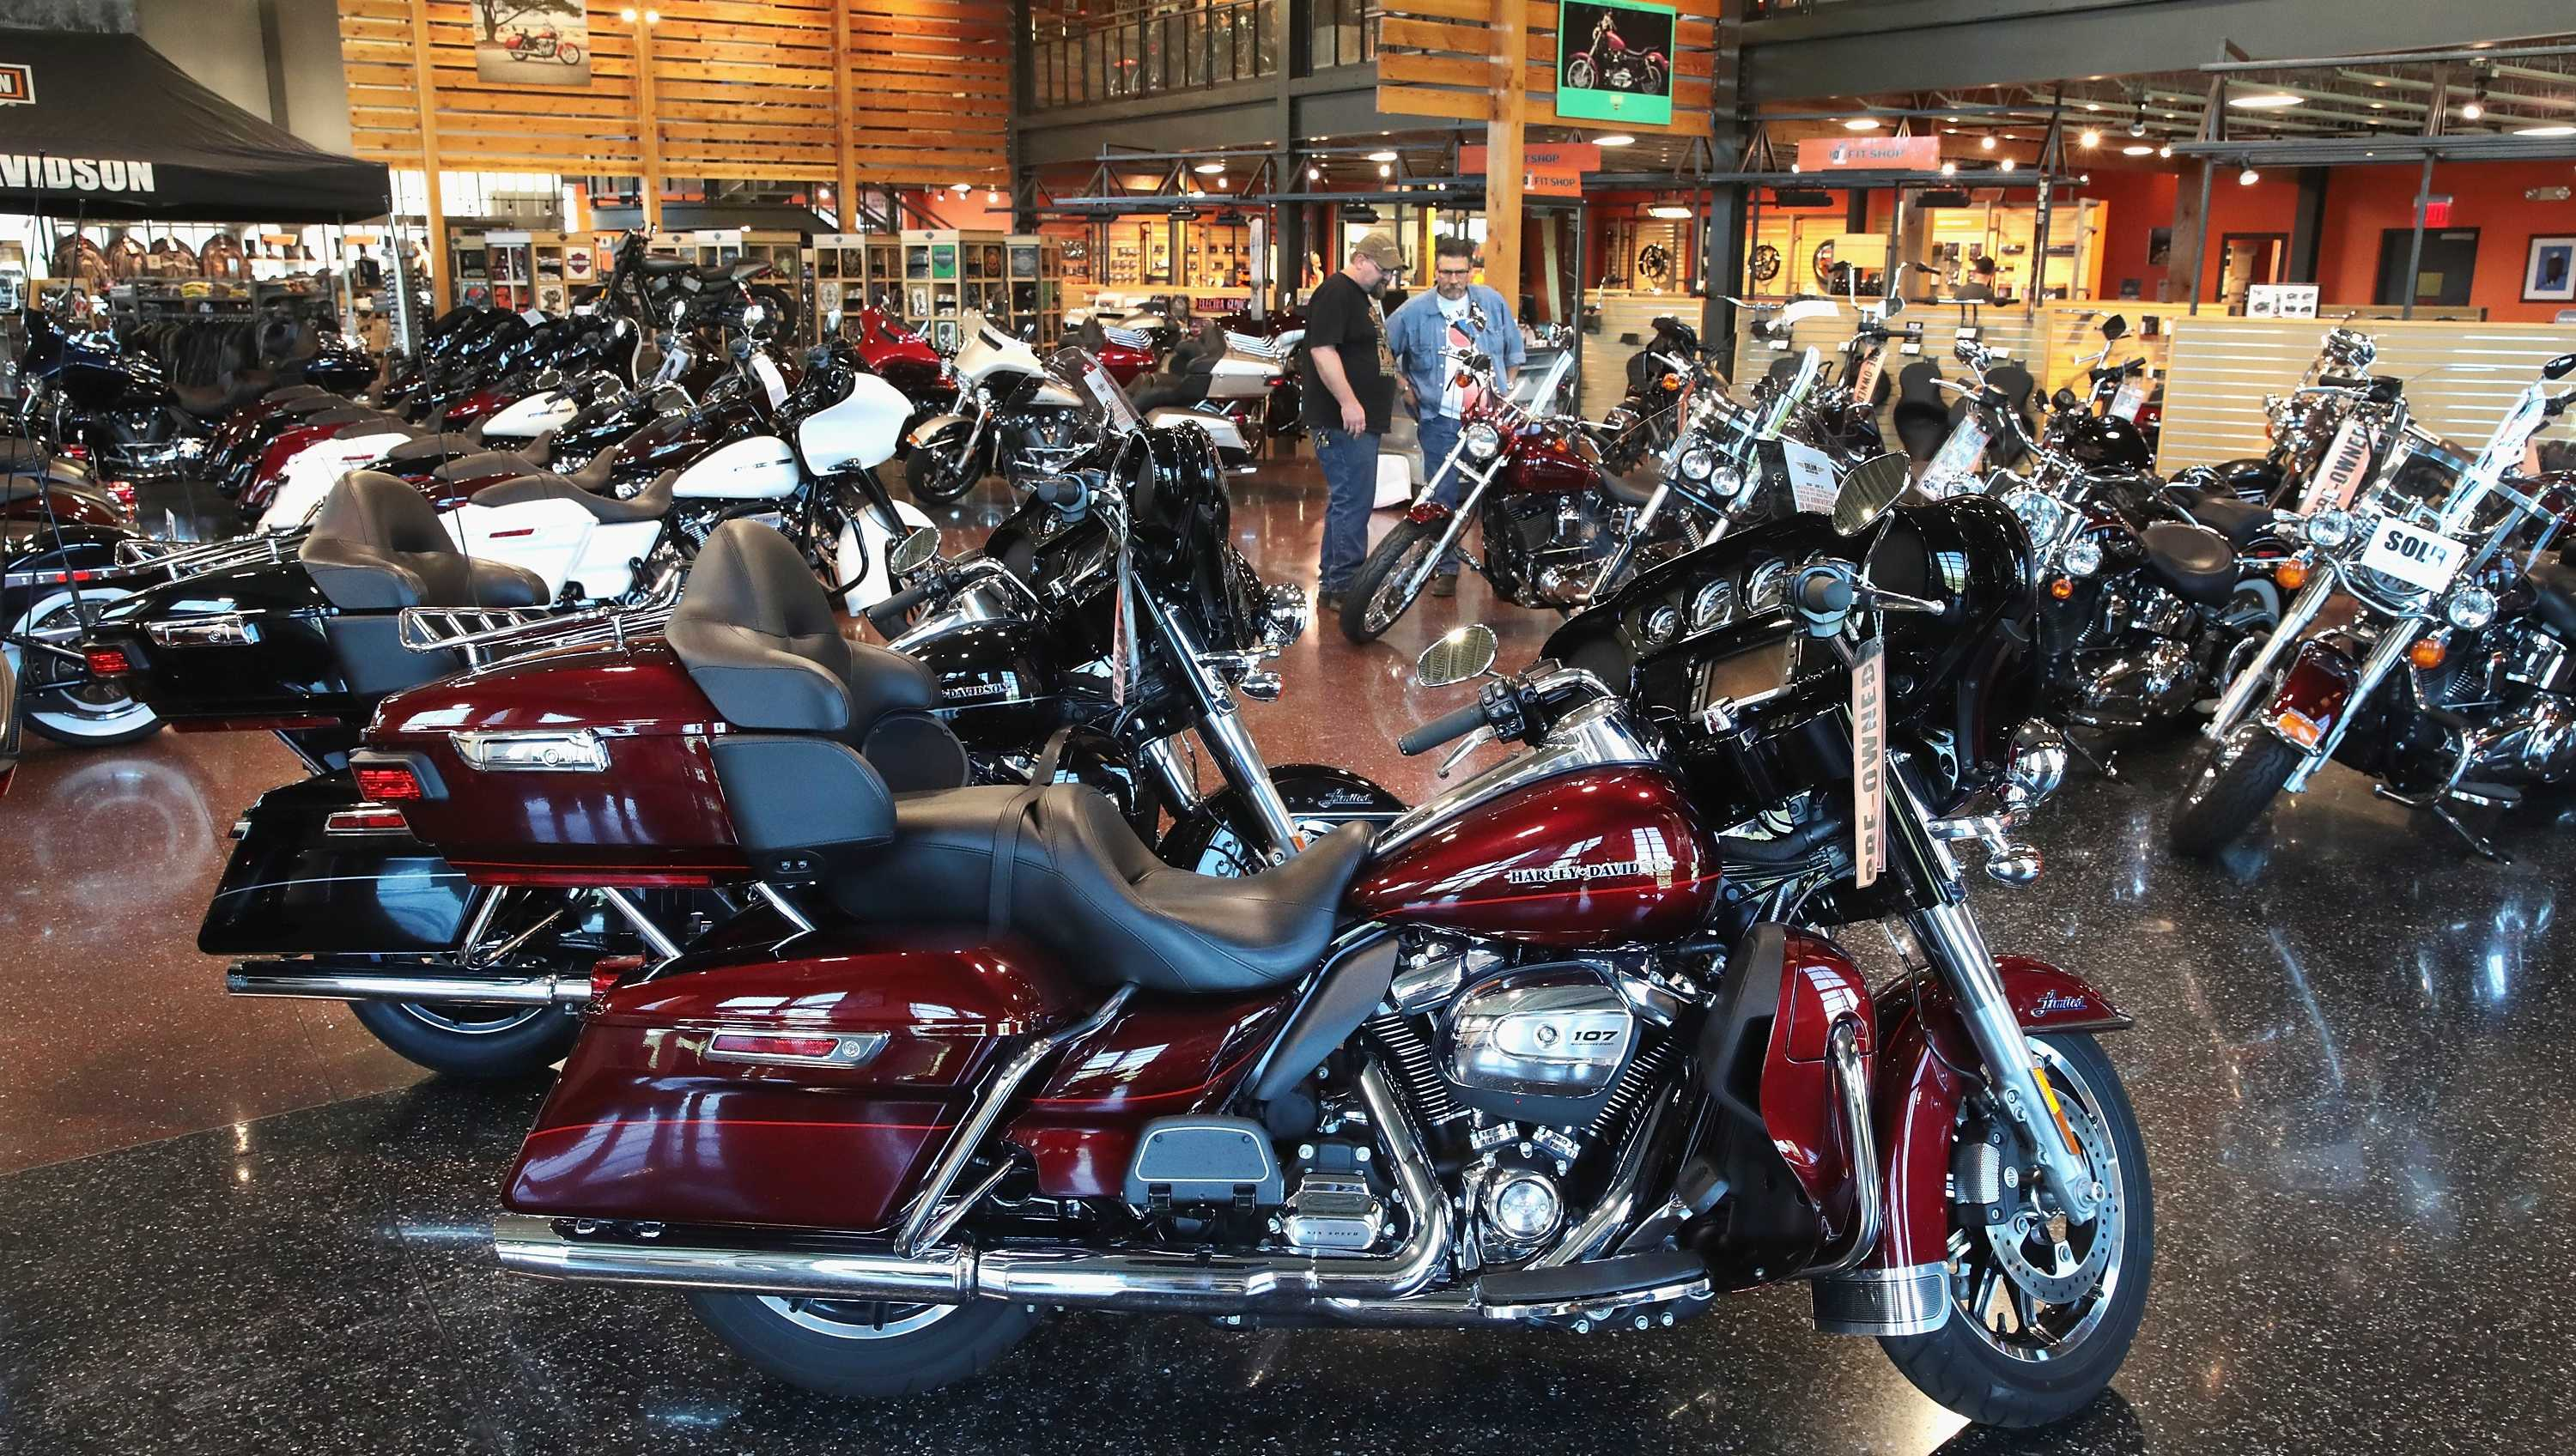 Harley-Davidson motorcycles are offered for sale at the Uke's Harley-Davidson dealership on June 1, 2018 in Kenosha, Wisconsin.